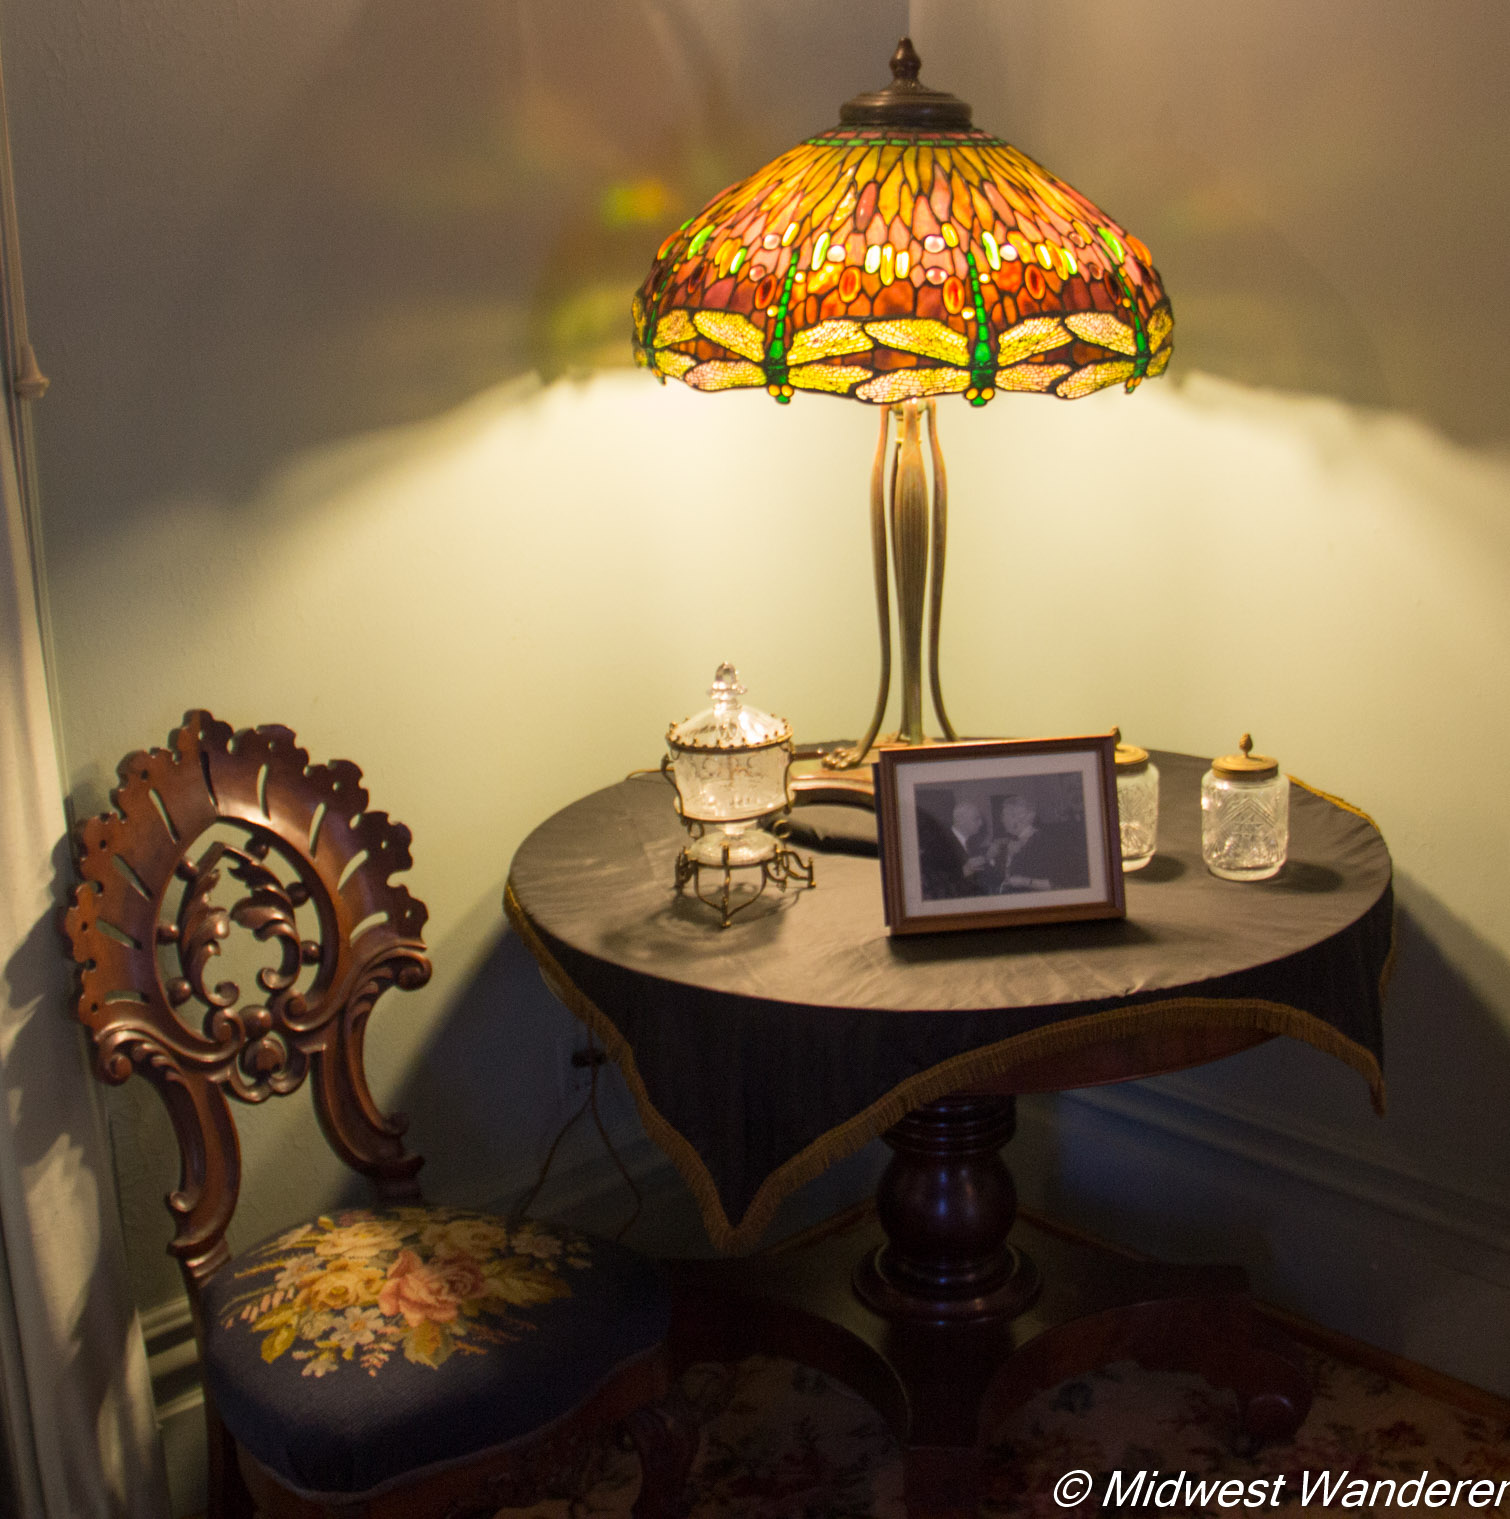 Pettengill-Morron House - Tiffany lamp